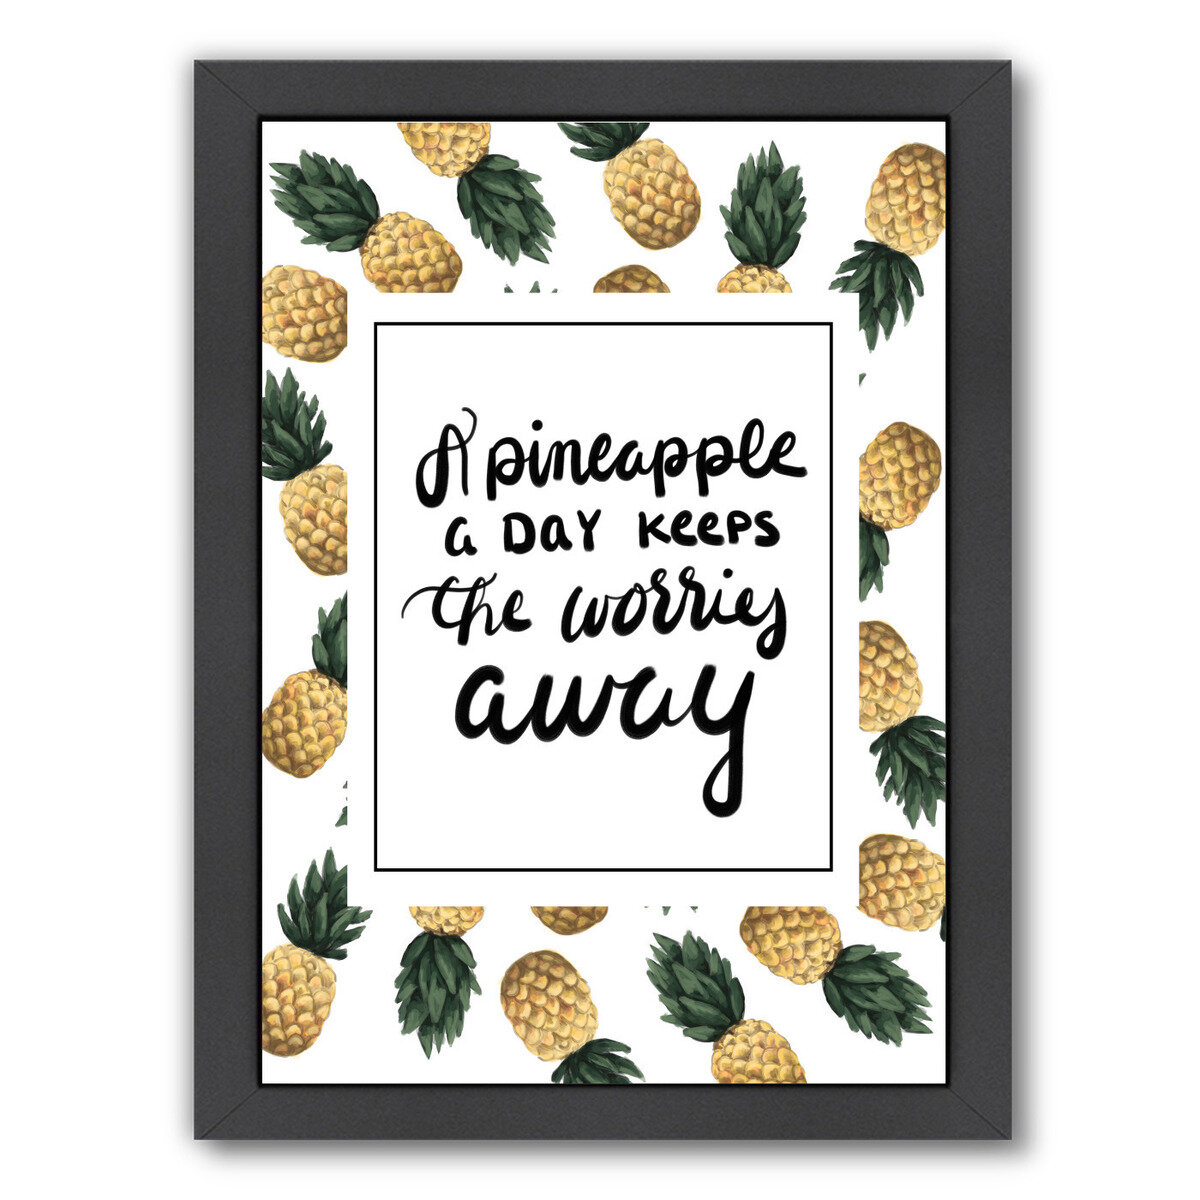 East Urban Home A Pineapple A Day Keeps The Worries Away Graphic Art Print Wayfair